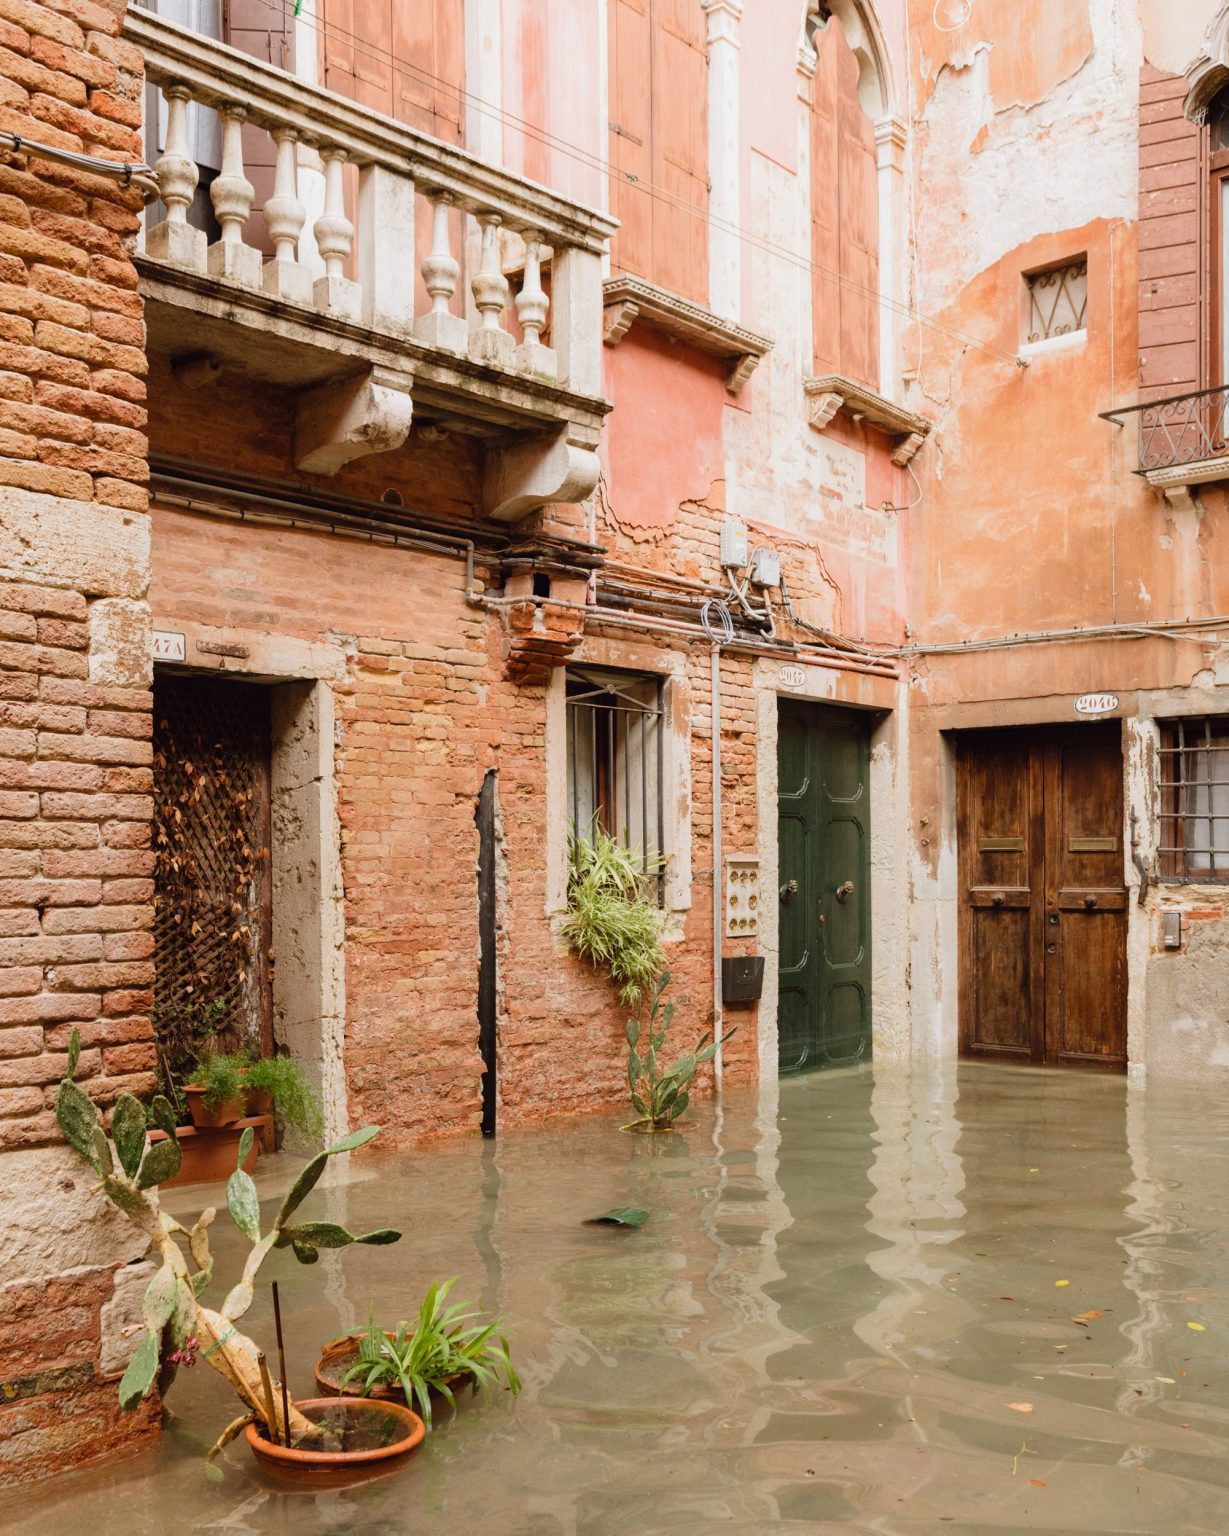 Exceptional acqua alta, or high water, in Venice, where the tide went up to 187cm, the highest level since the 1966 flood. Brugnaro, the mayor declared a state of disaster. Venice, Italy, 2019